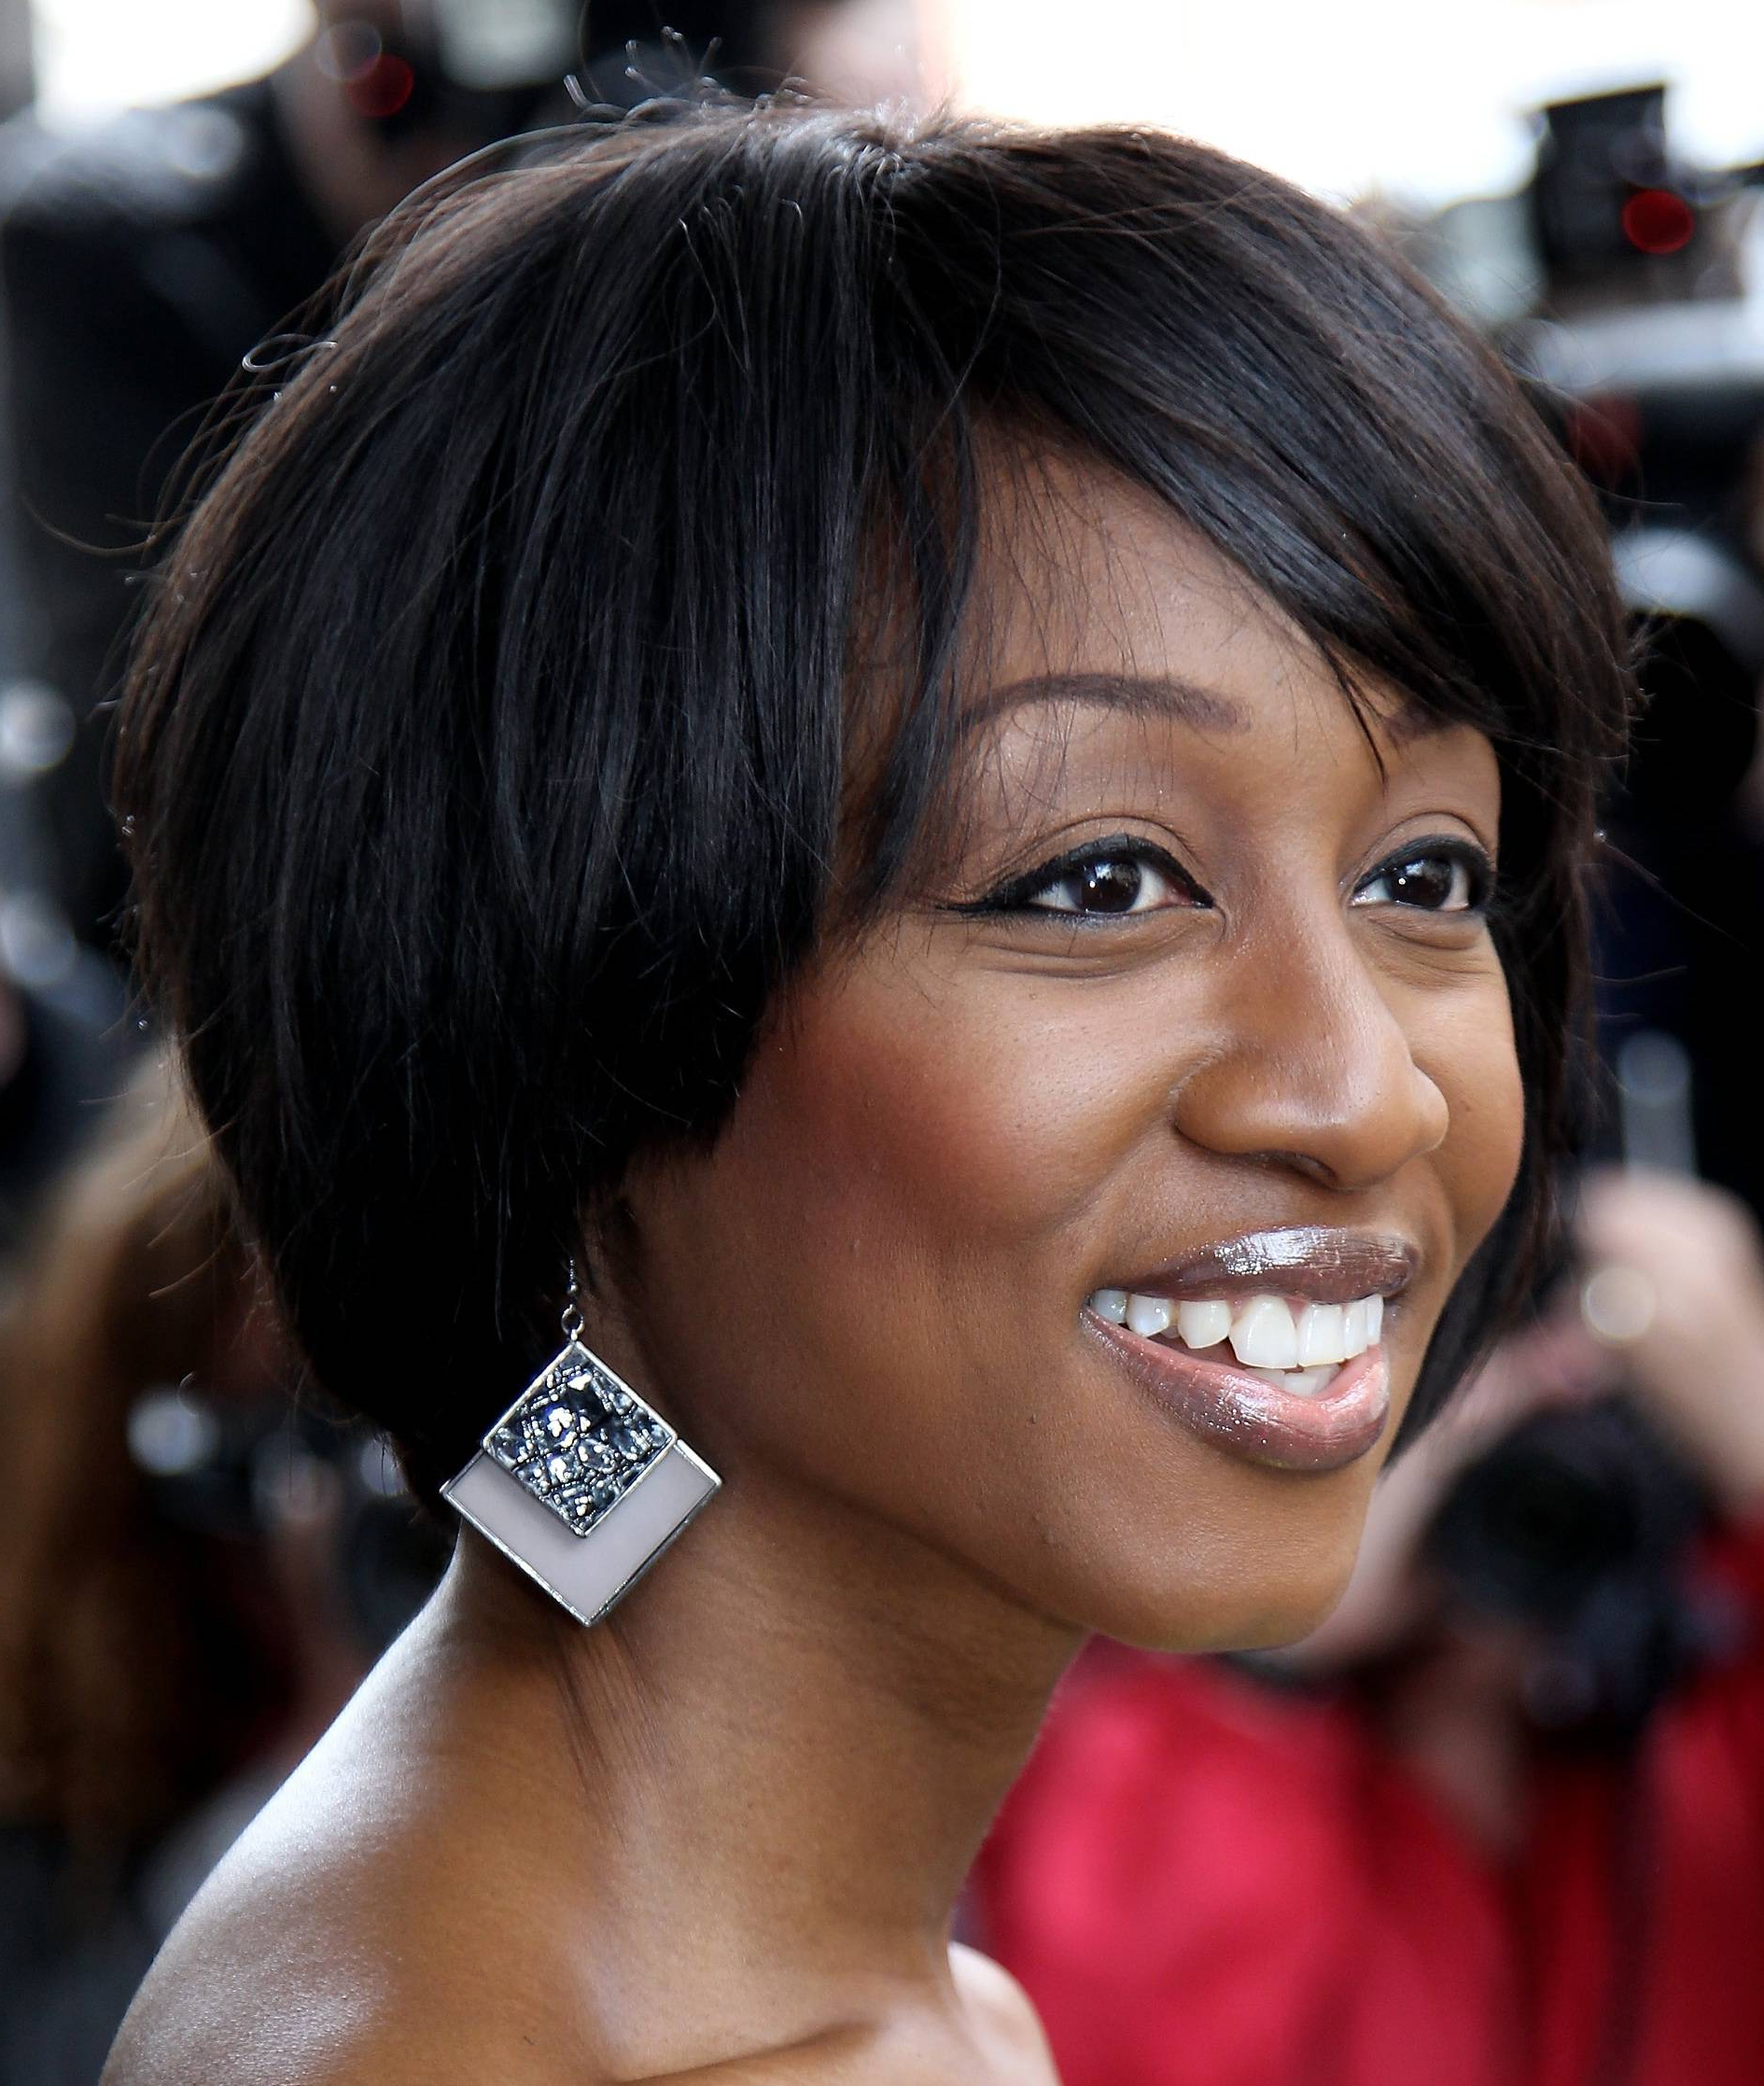 Black Short Bob Hairstyles 2013 – Hairstyle For Women & Man Regarding Most Popular Medium Hairstyles For African American Women With Round Faces (View 6 of 20)